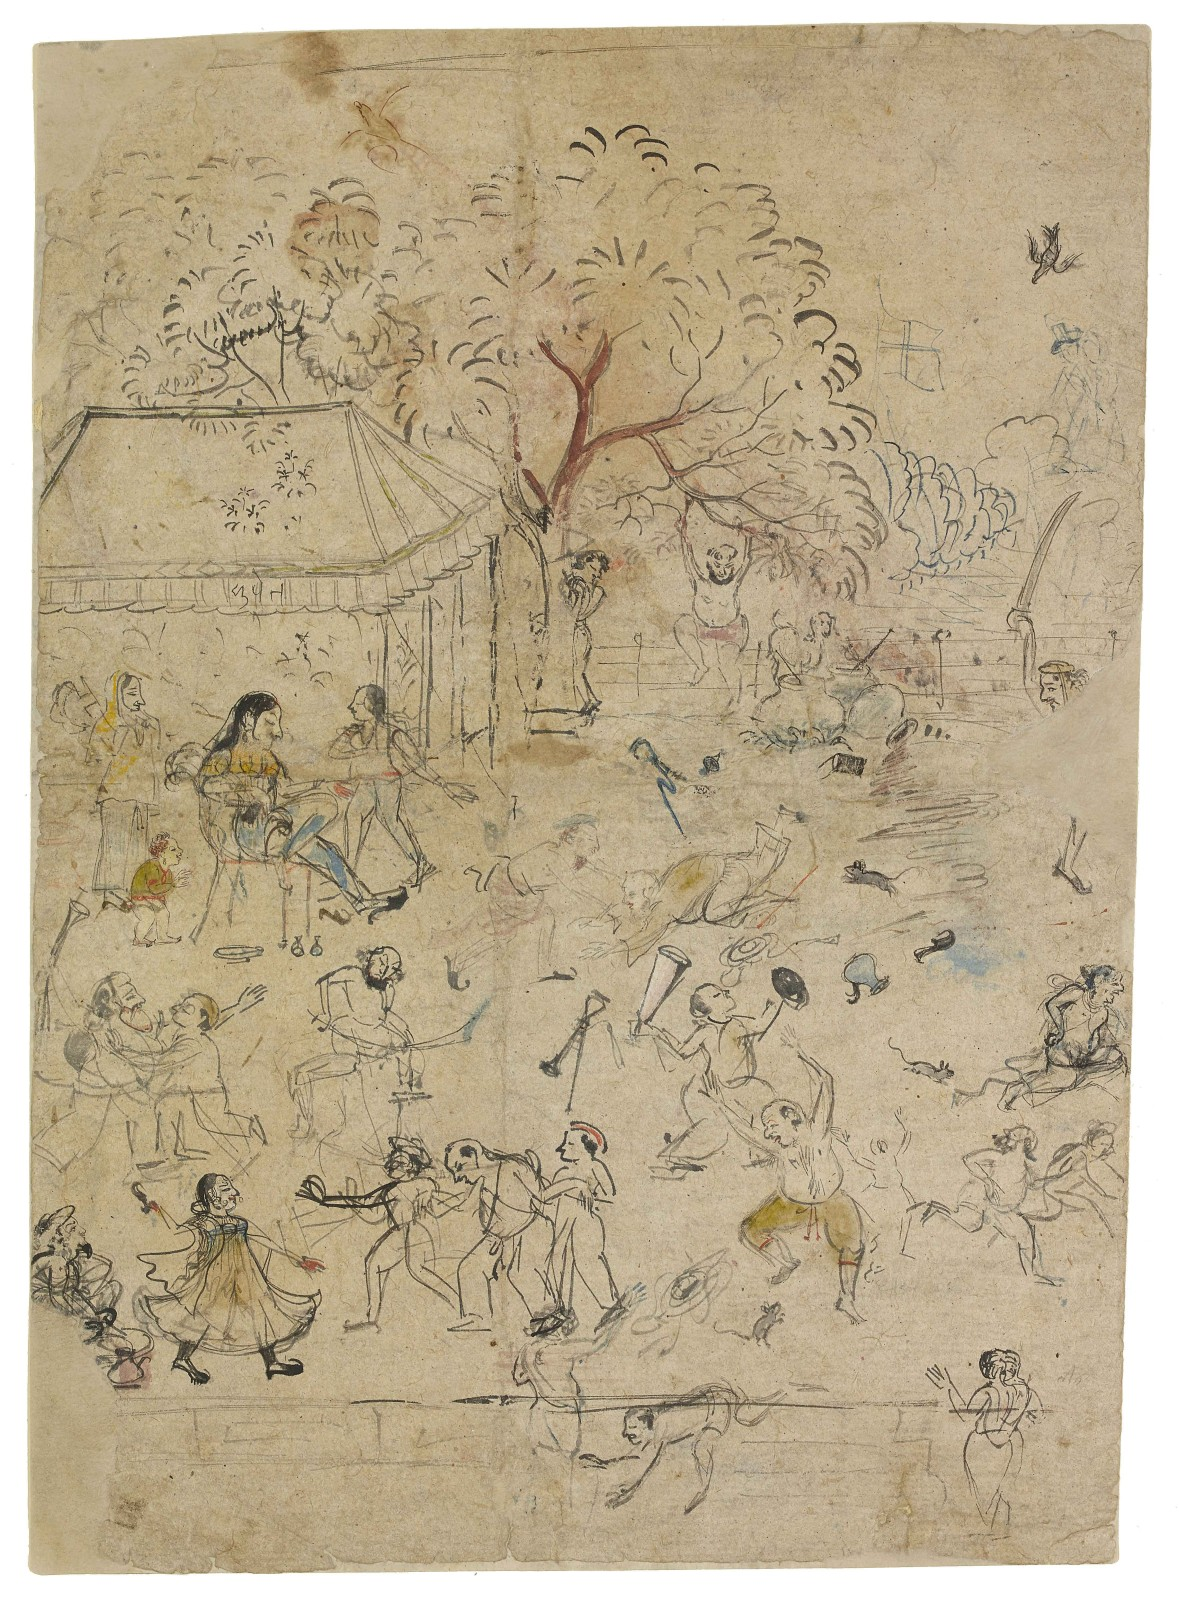 Mayhem caused by bhang and mice Rajasthan, Kota, c.1850